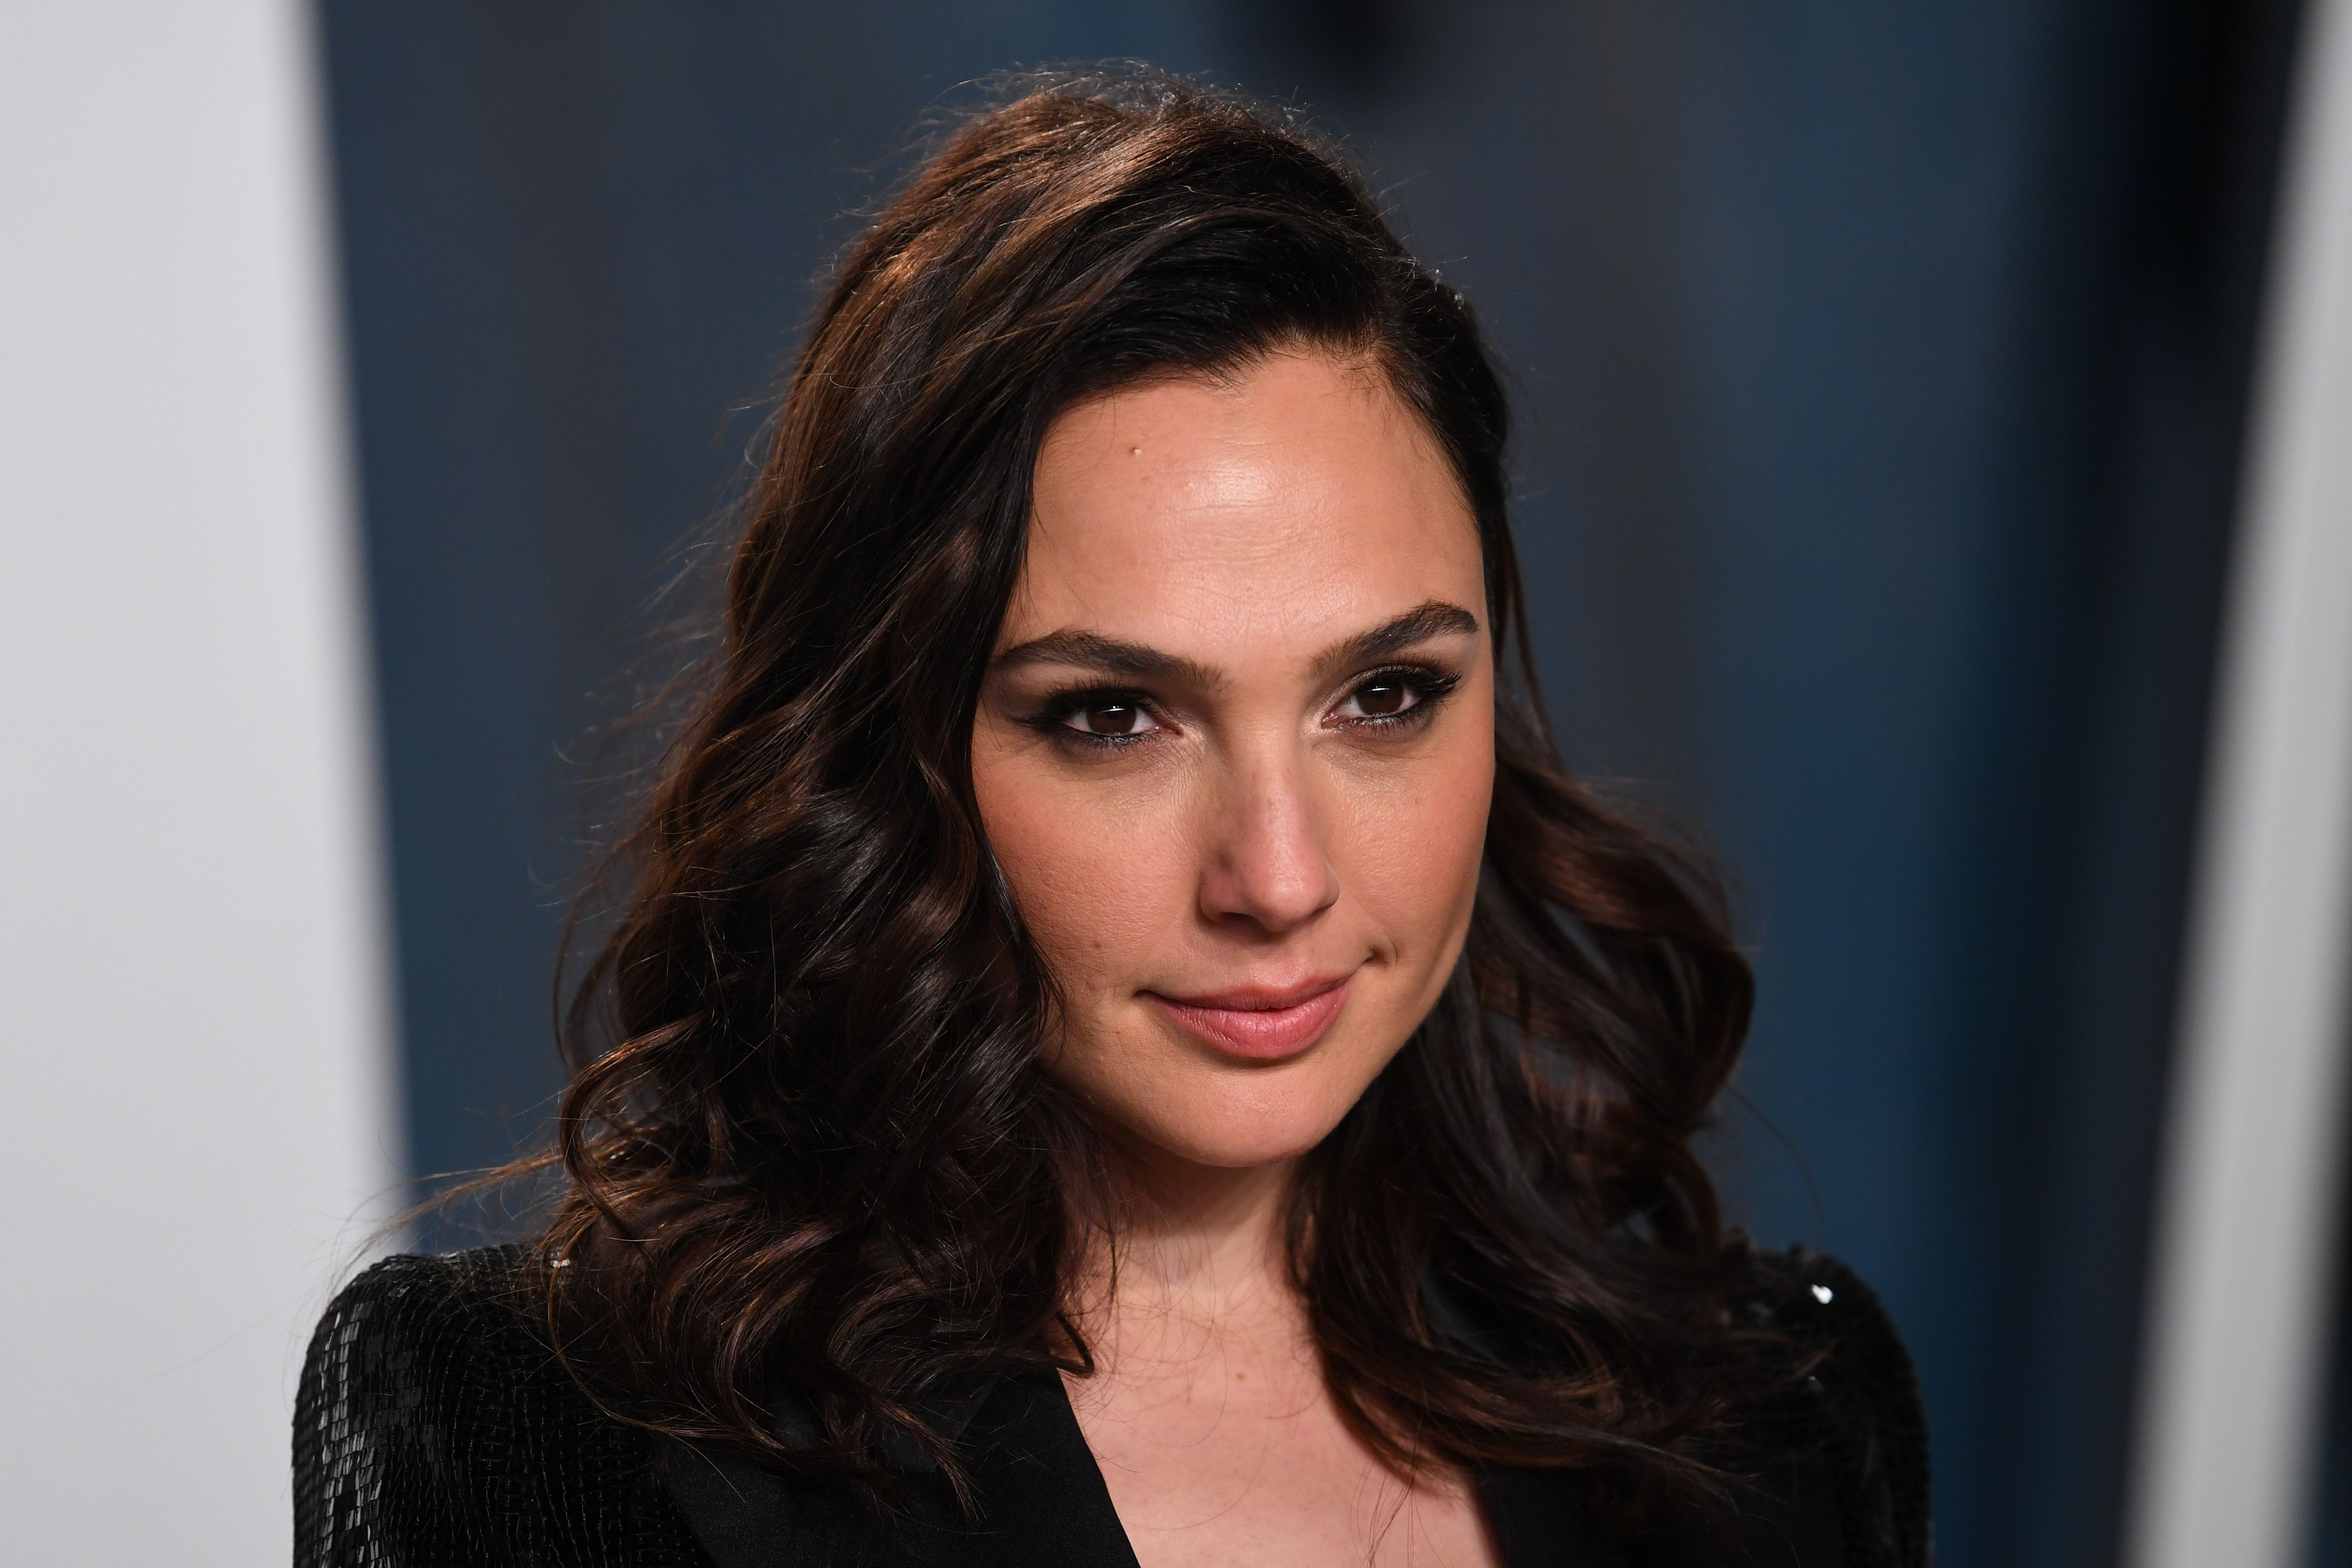 Watch Gal Gadot, Will Ferrell, Sia, Natalie Portman and More Cover 'Imagine' - EpicNews